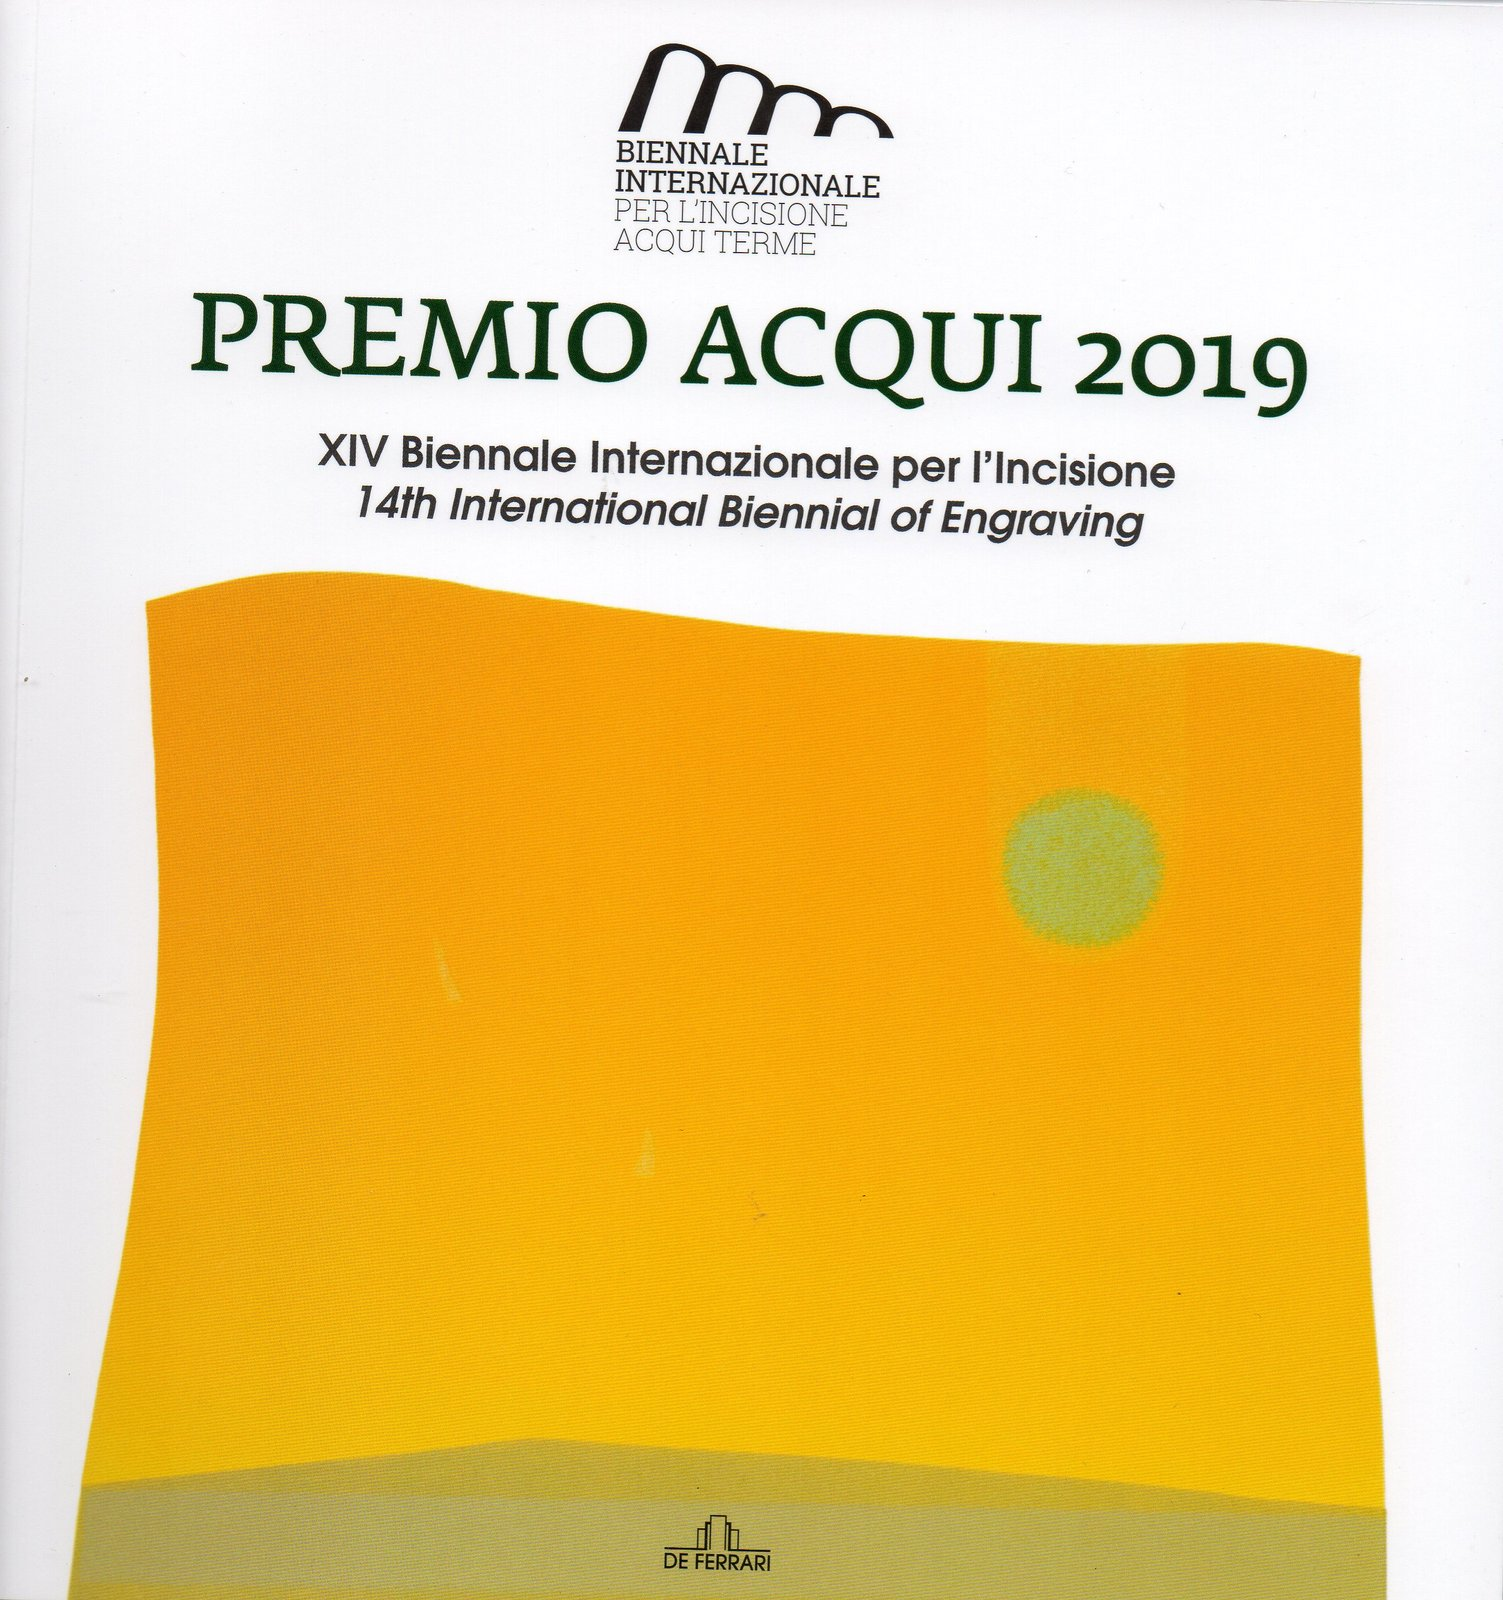 1 catalogo acqui 2019 savini001